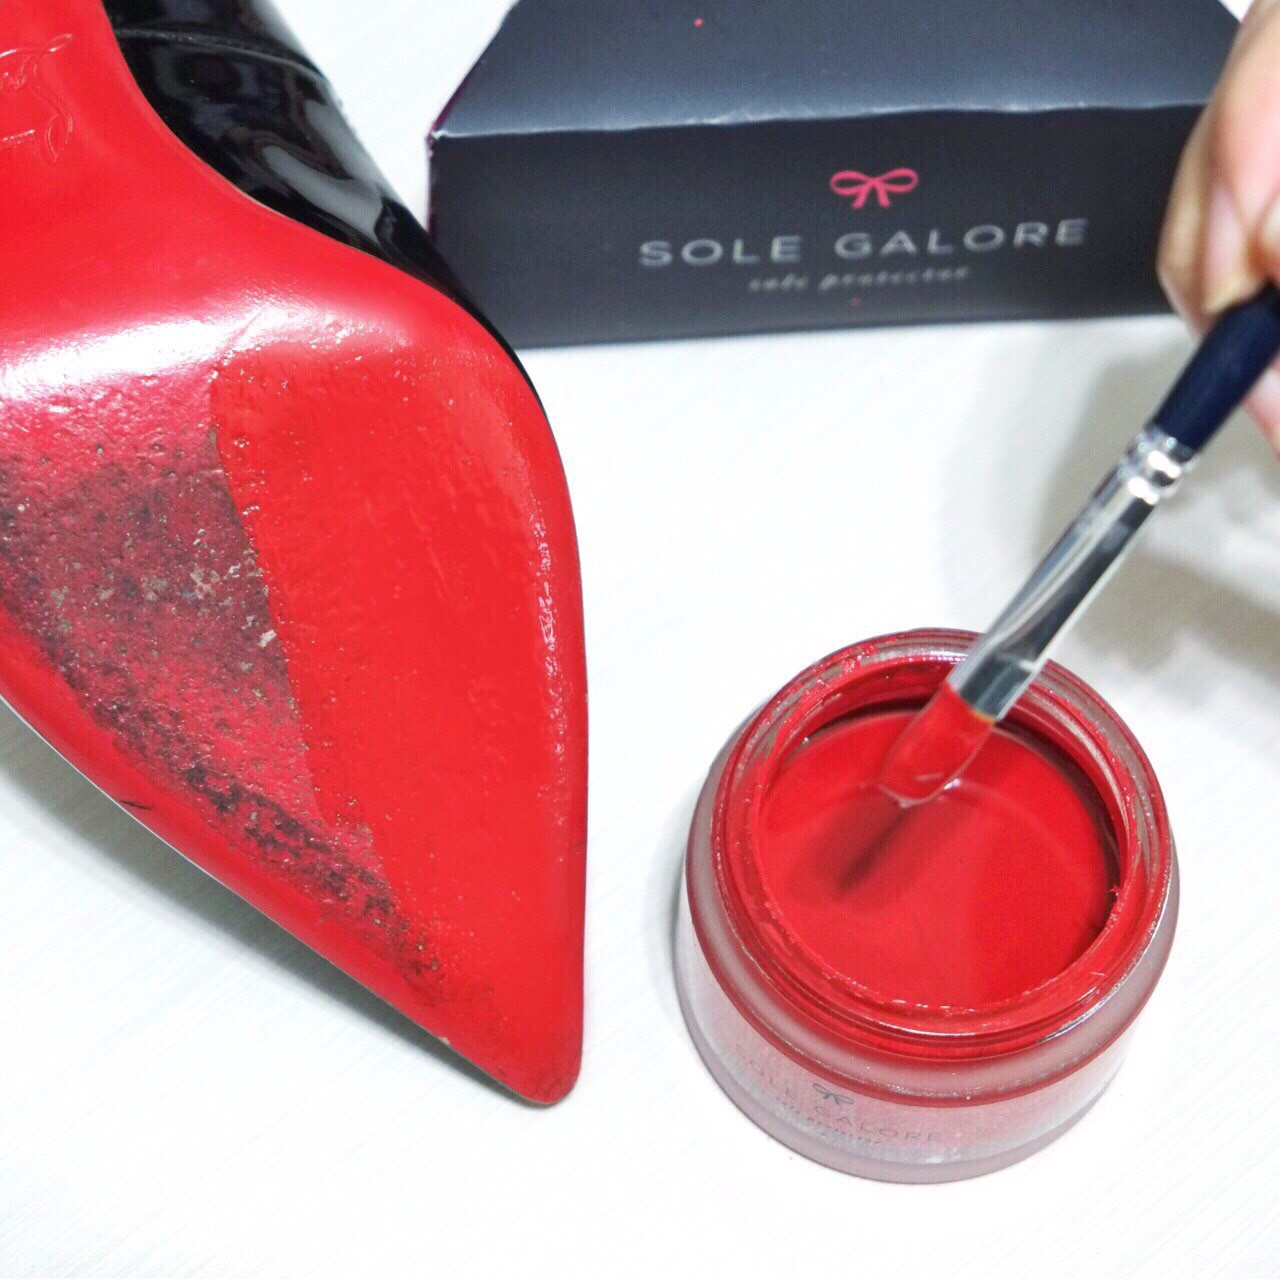 SAVE YOUR LOUBOUTIN SOLES - SOLE GALORE PAINT REVIEW - Reed Fashion Blog a2df14e25